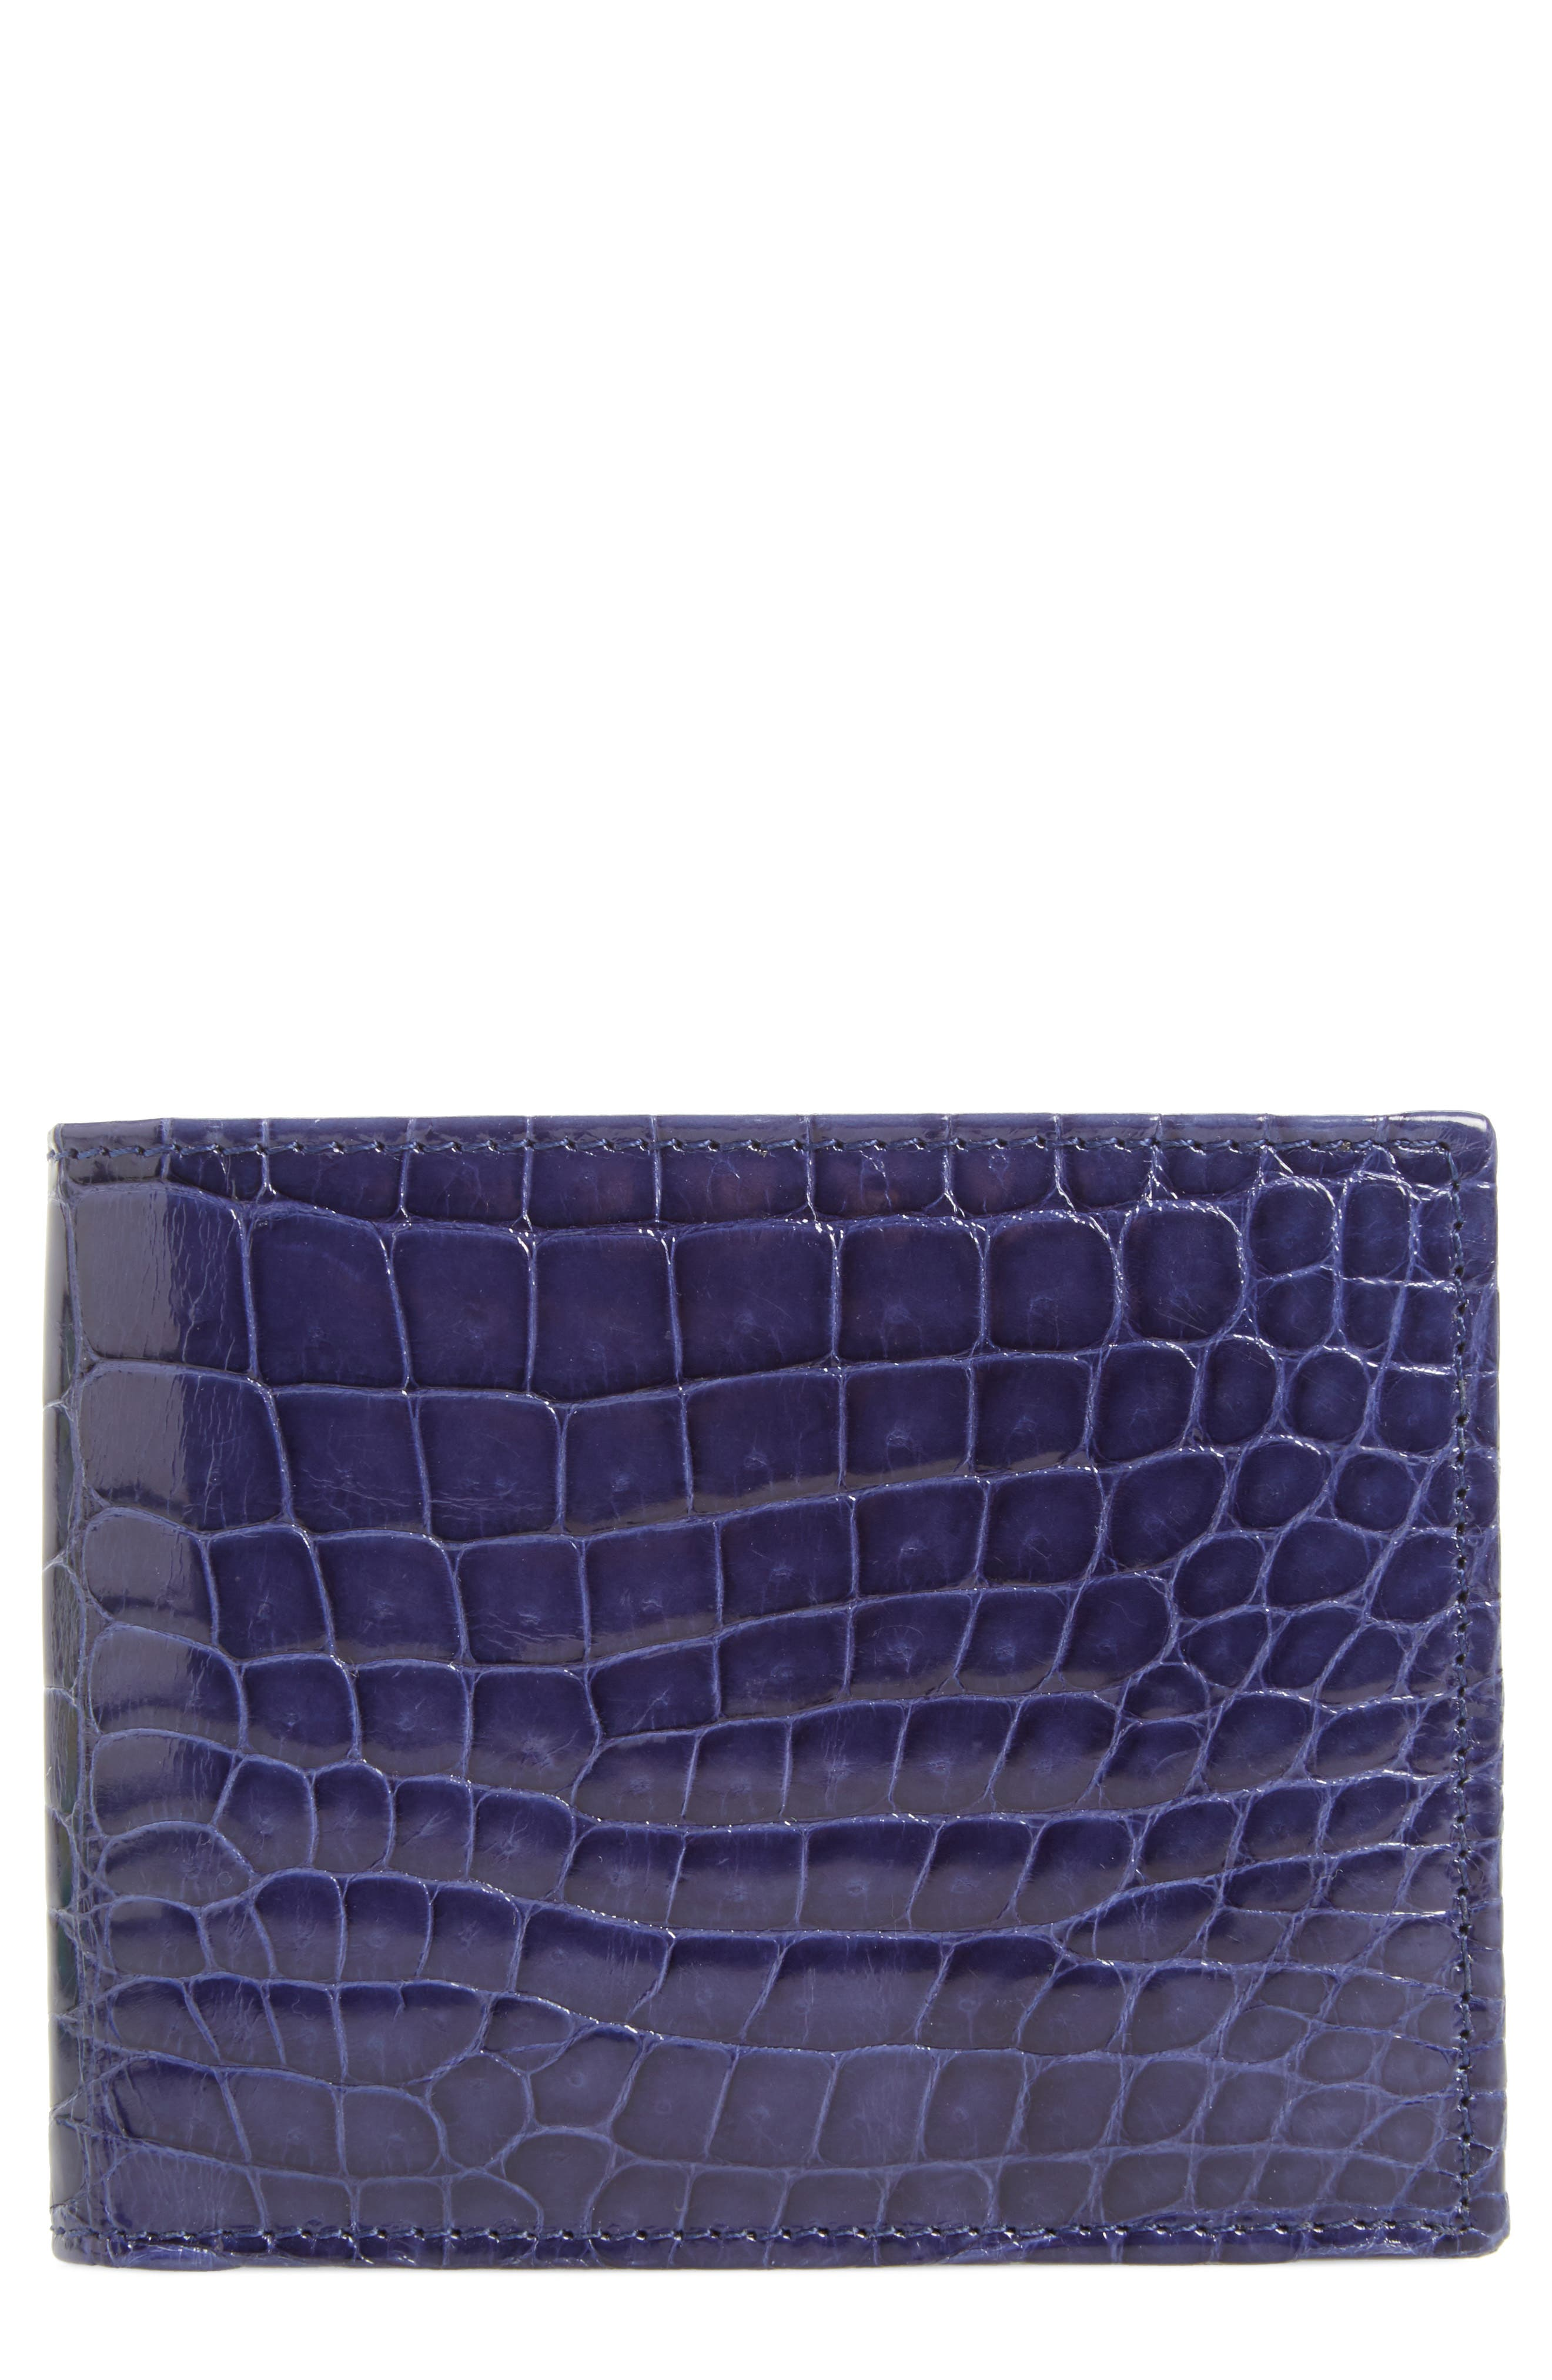 Alligator Leather Bifold Wallet,                             Main thumbnail 1, color,                             JEANS